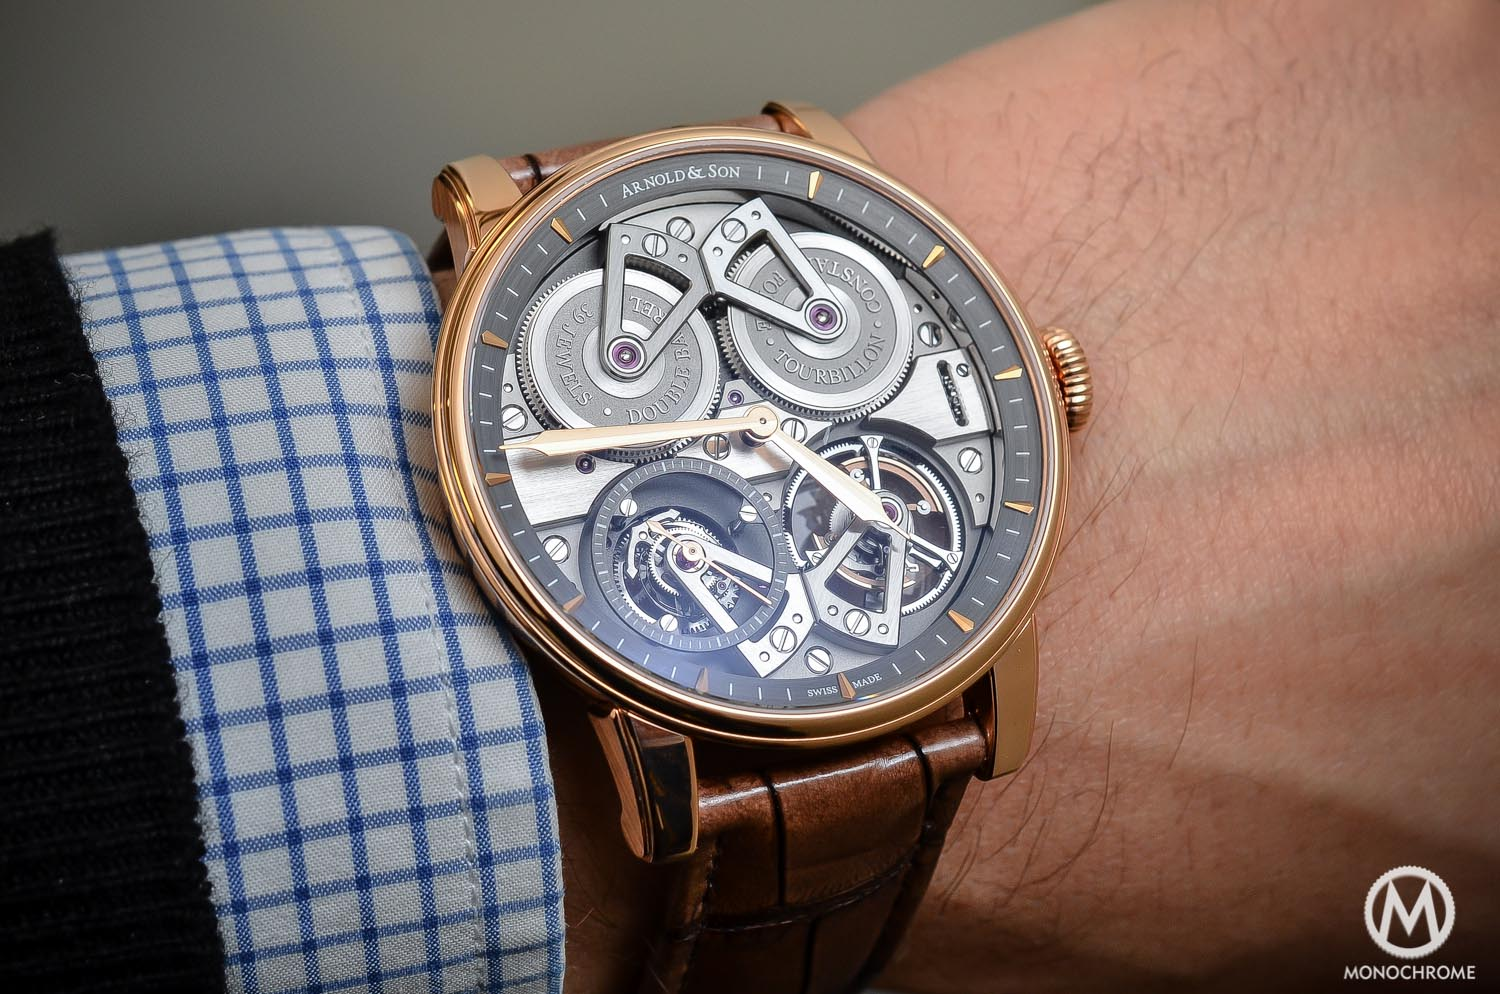 Arnold and Son Constant Force Tourbillon - hands-on review - wristshot